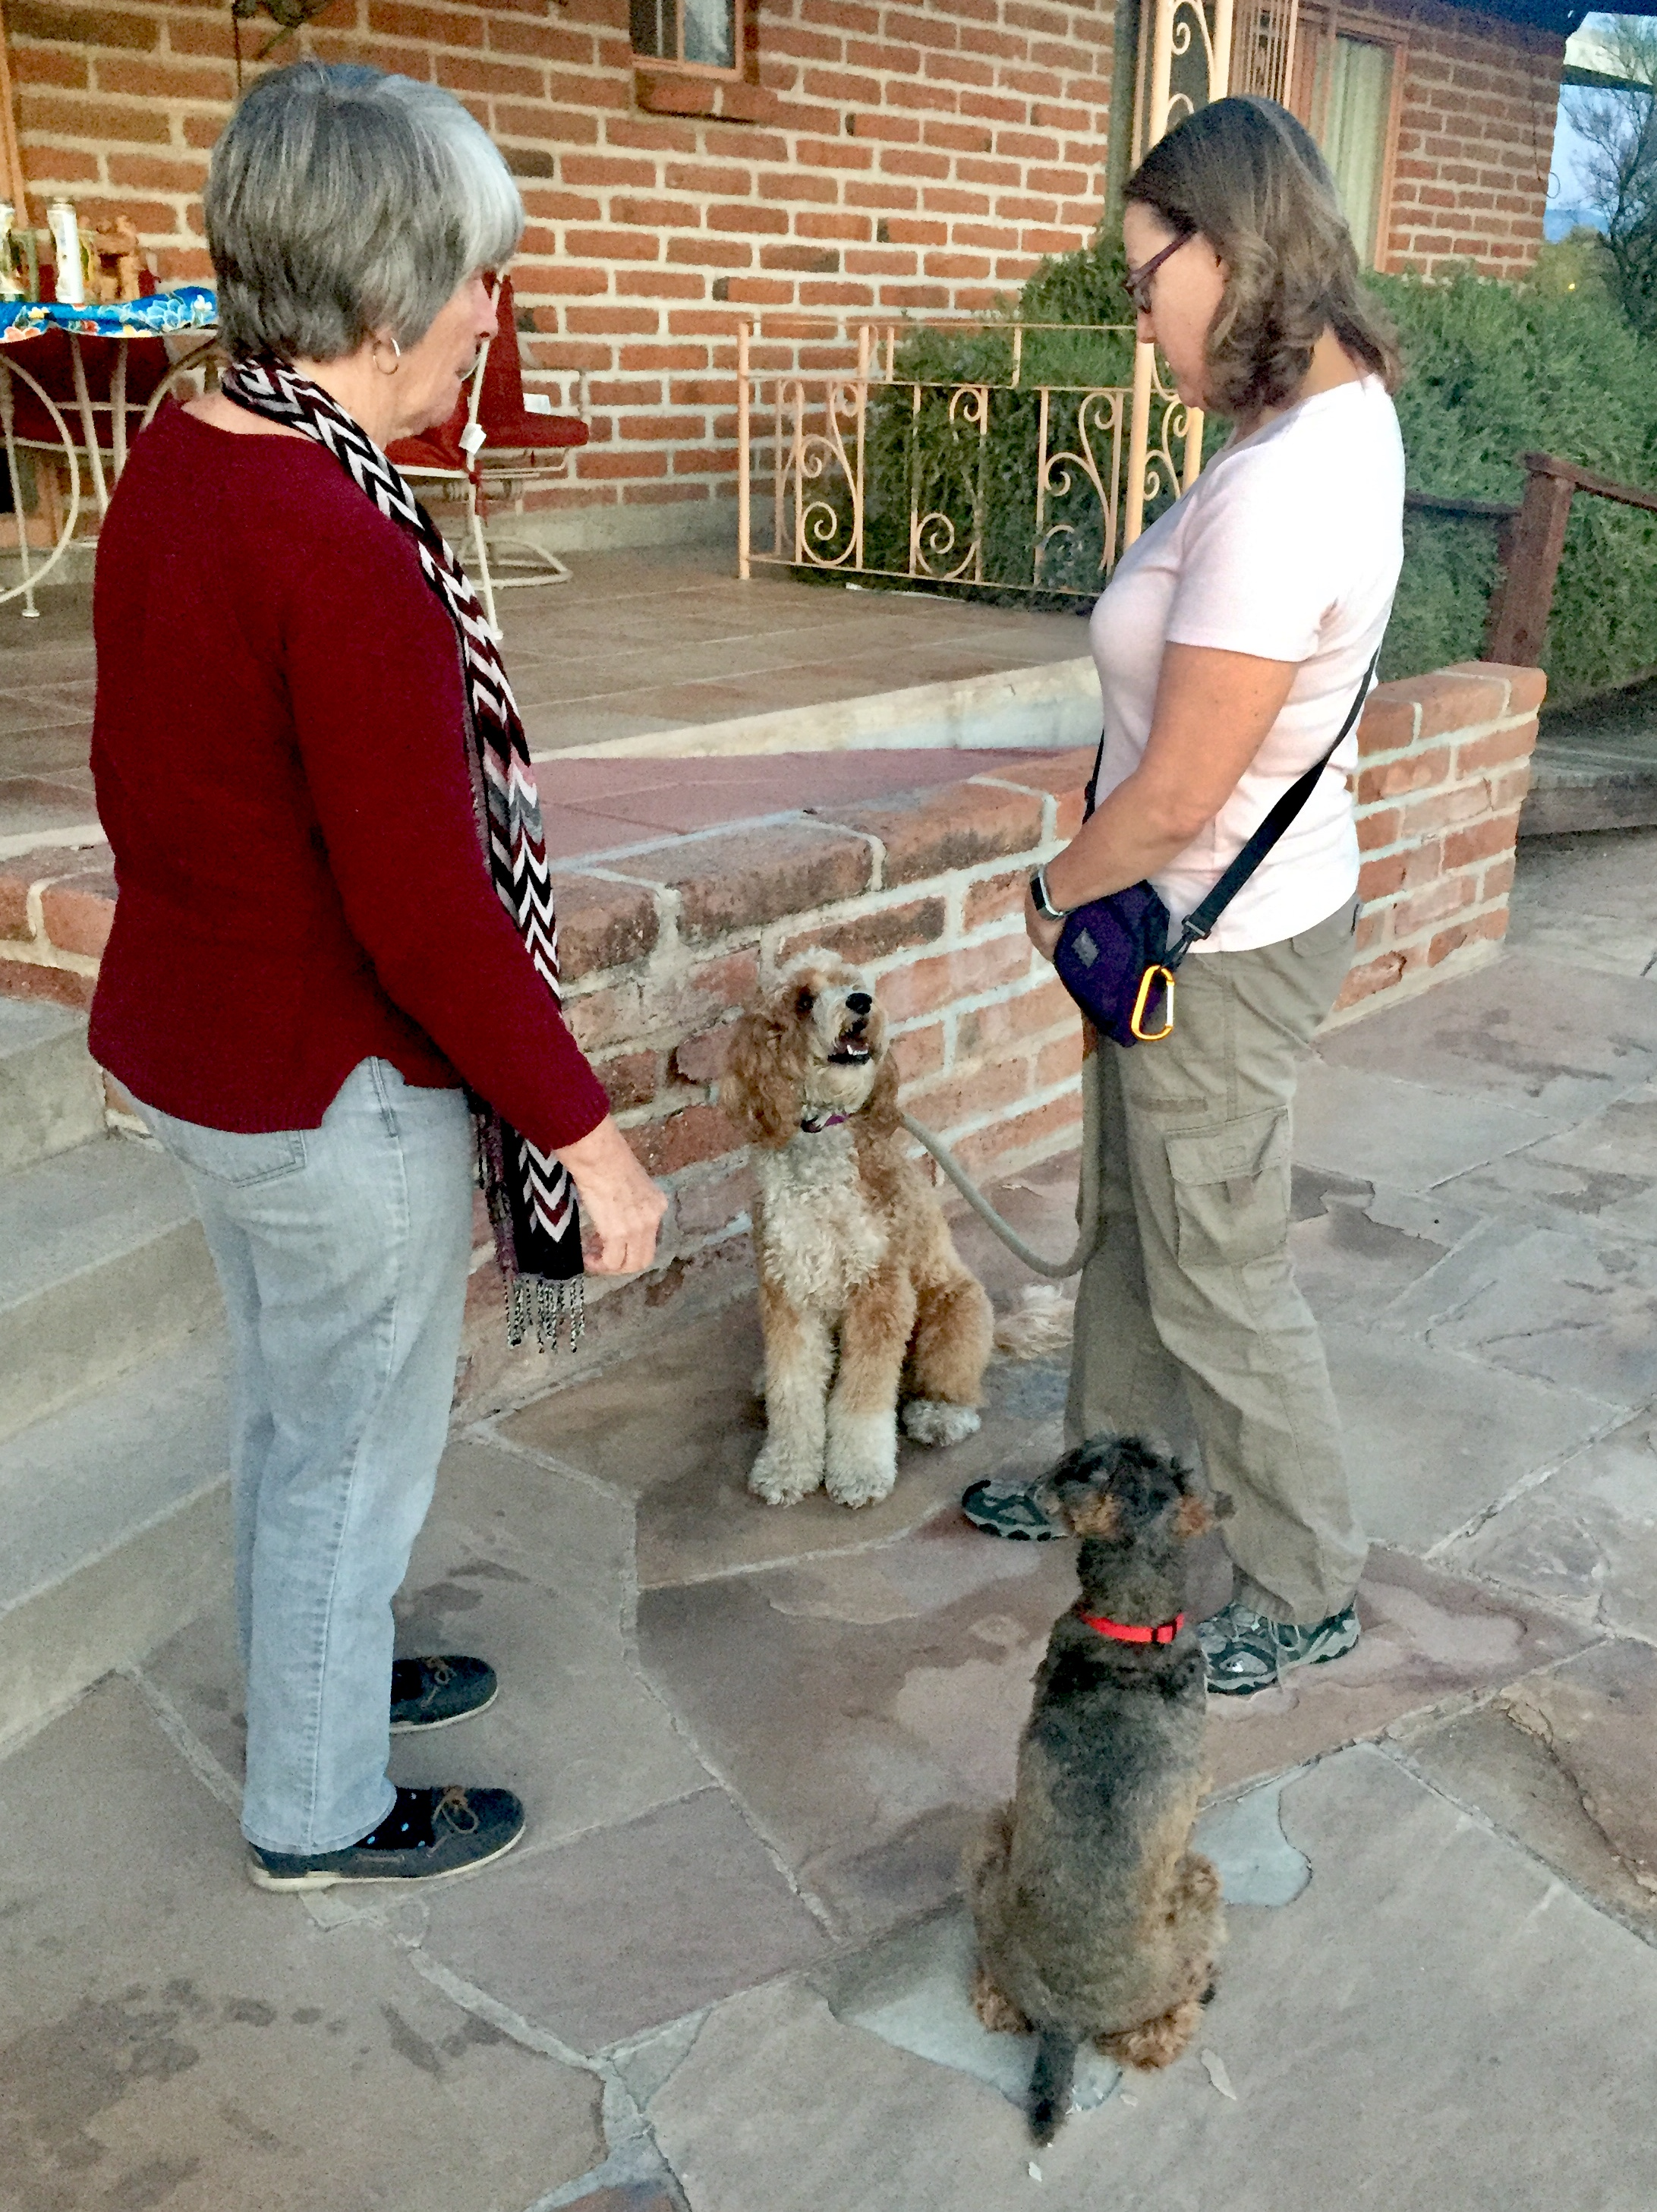 With a little effort, I re-engage Bernie McSquare who is laser-focused on me while the other dogs relaxes into a sit and my friend is ready for our meeting so we can continue to practice for the Canine Good Citizen test.